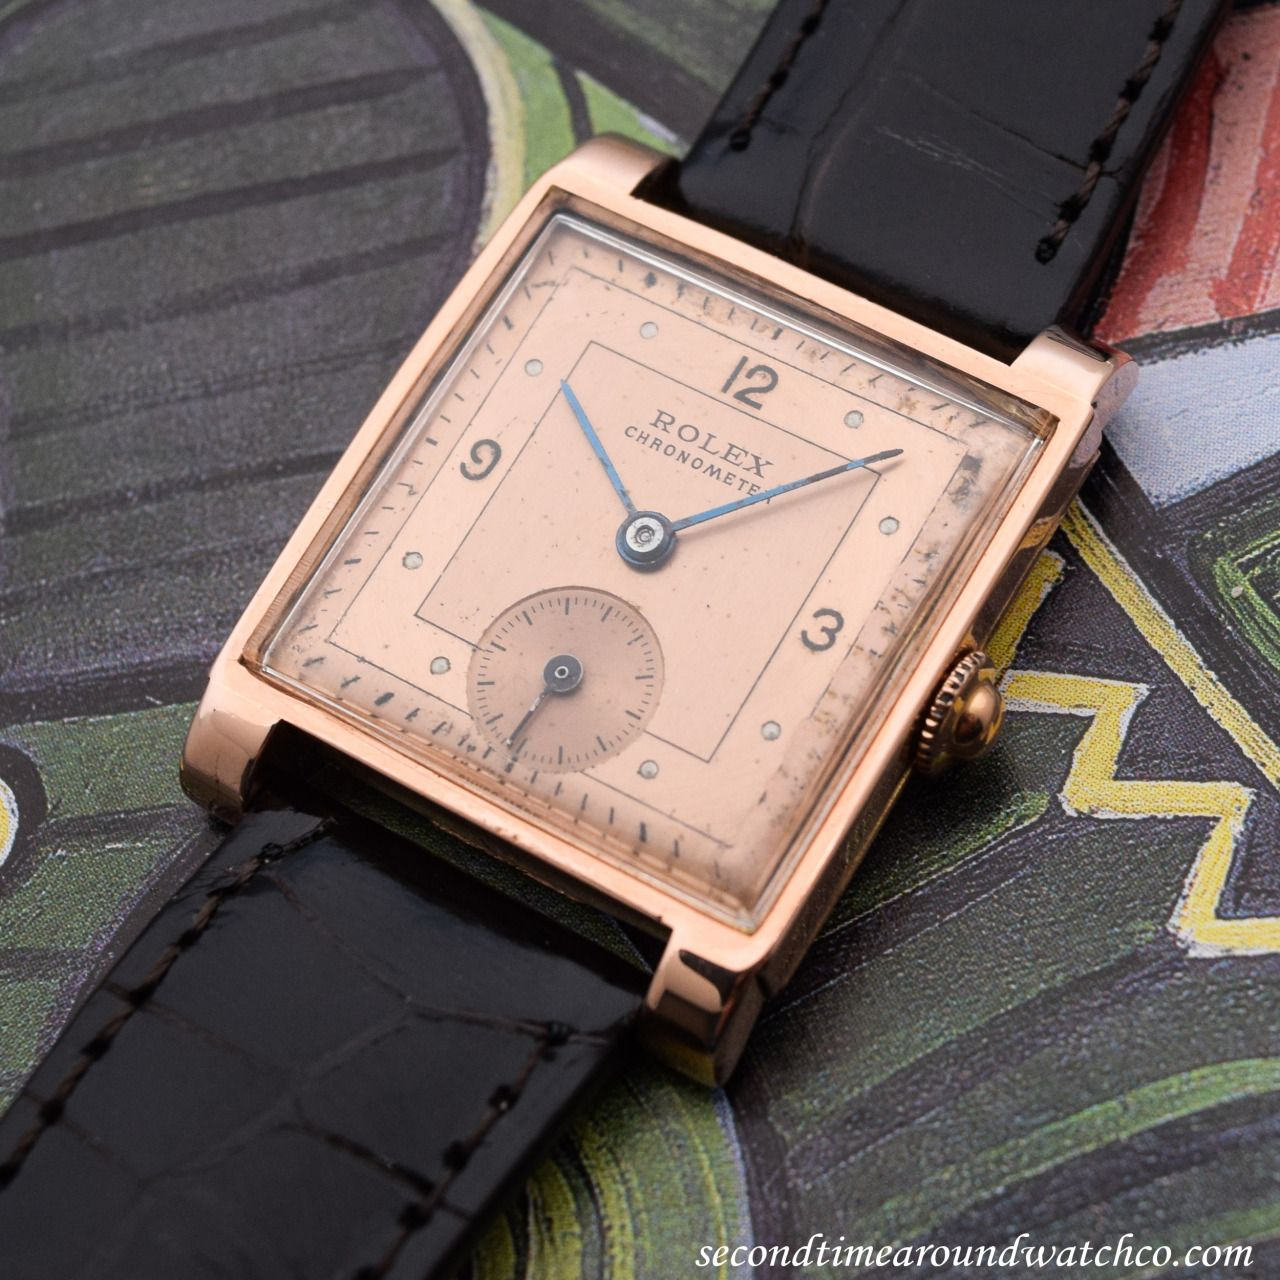 a8920748bee A breathtaking 1940 vintage Rolex Square-shaped timepiece in 14K Rose Gold  with an aged